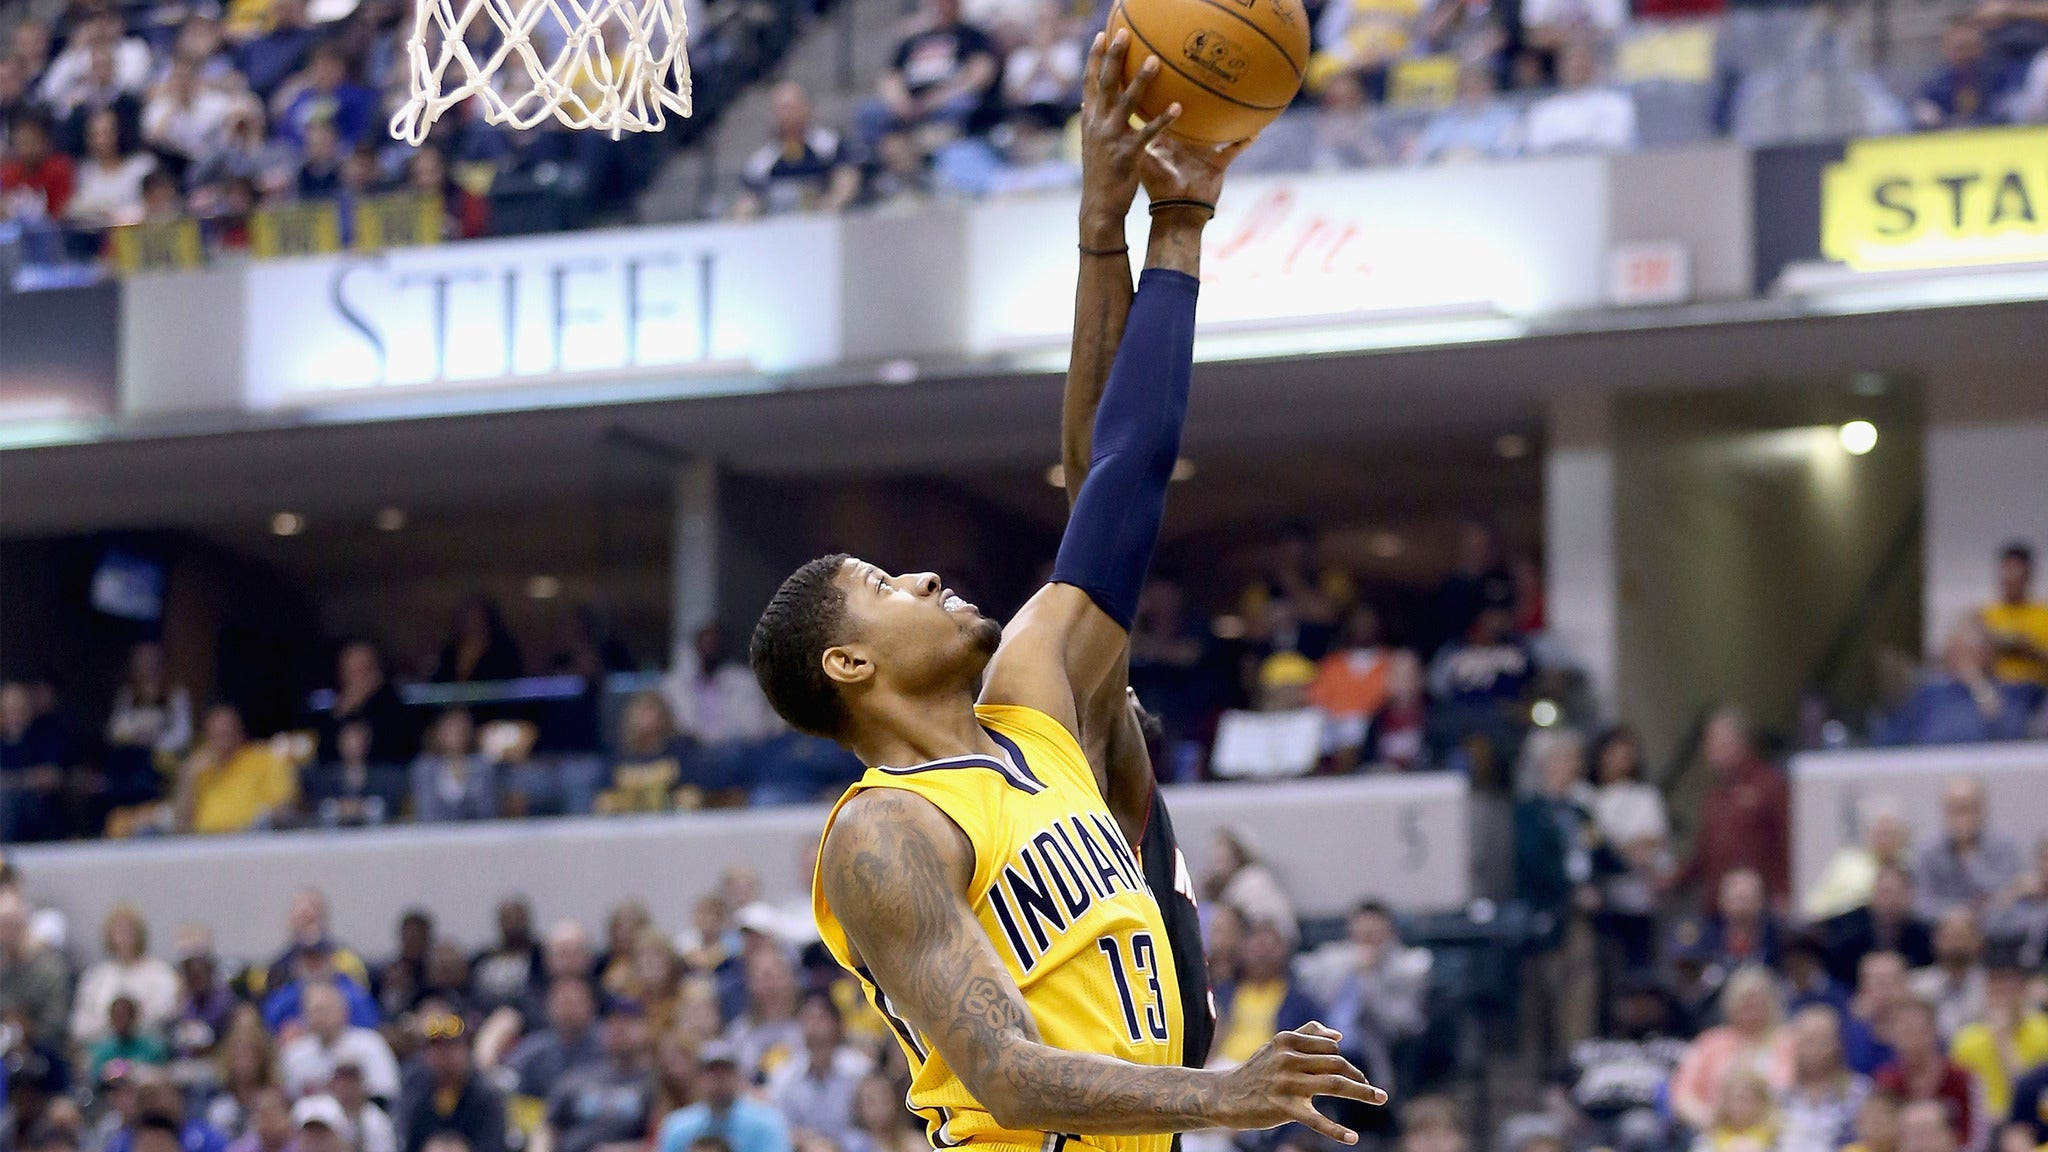 Indiana Pacers vs. Memphis Grizzlies